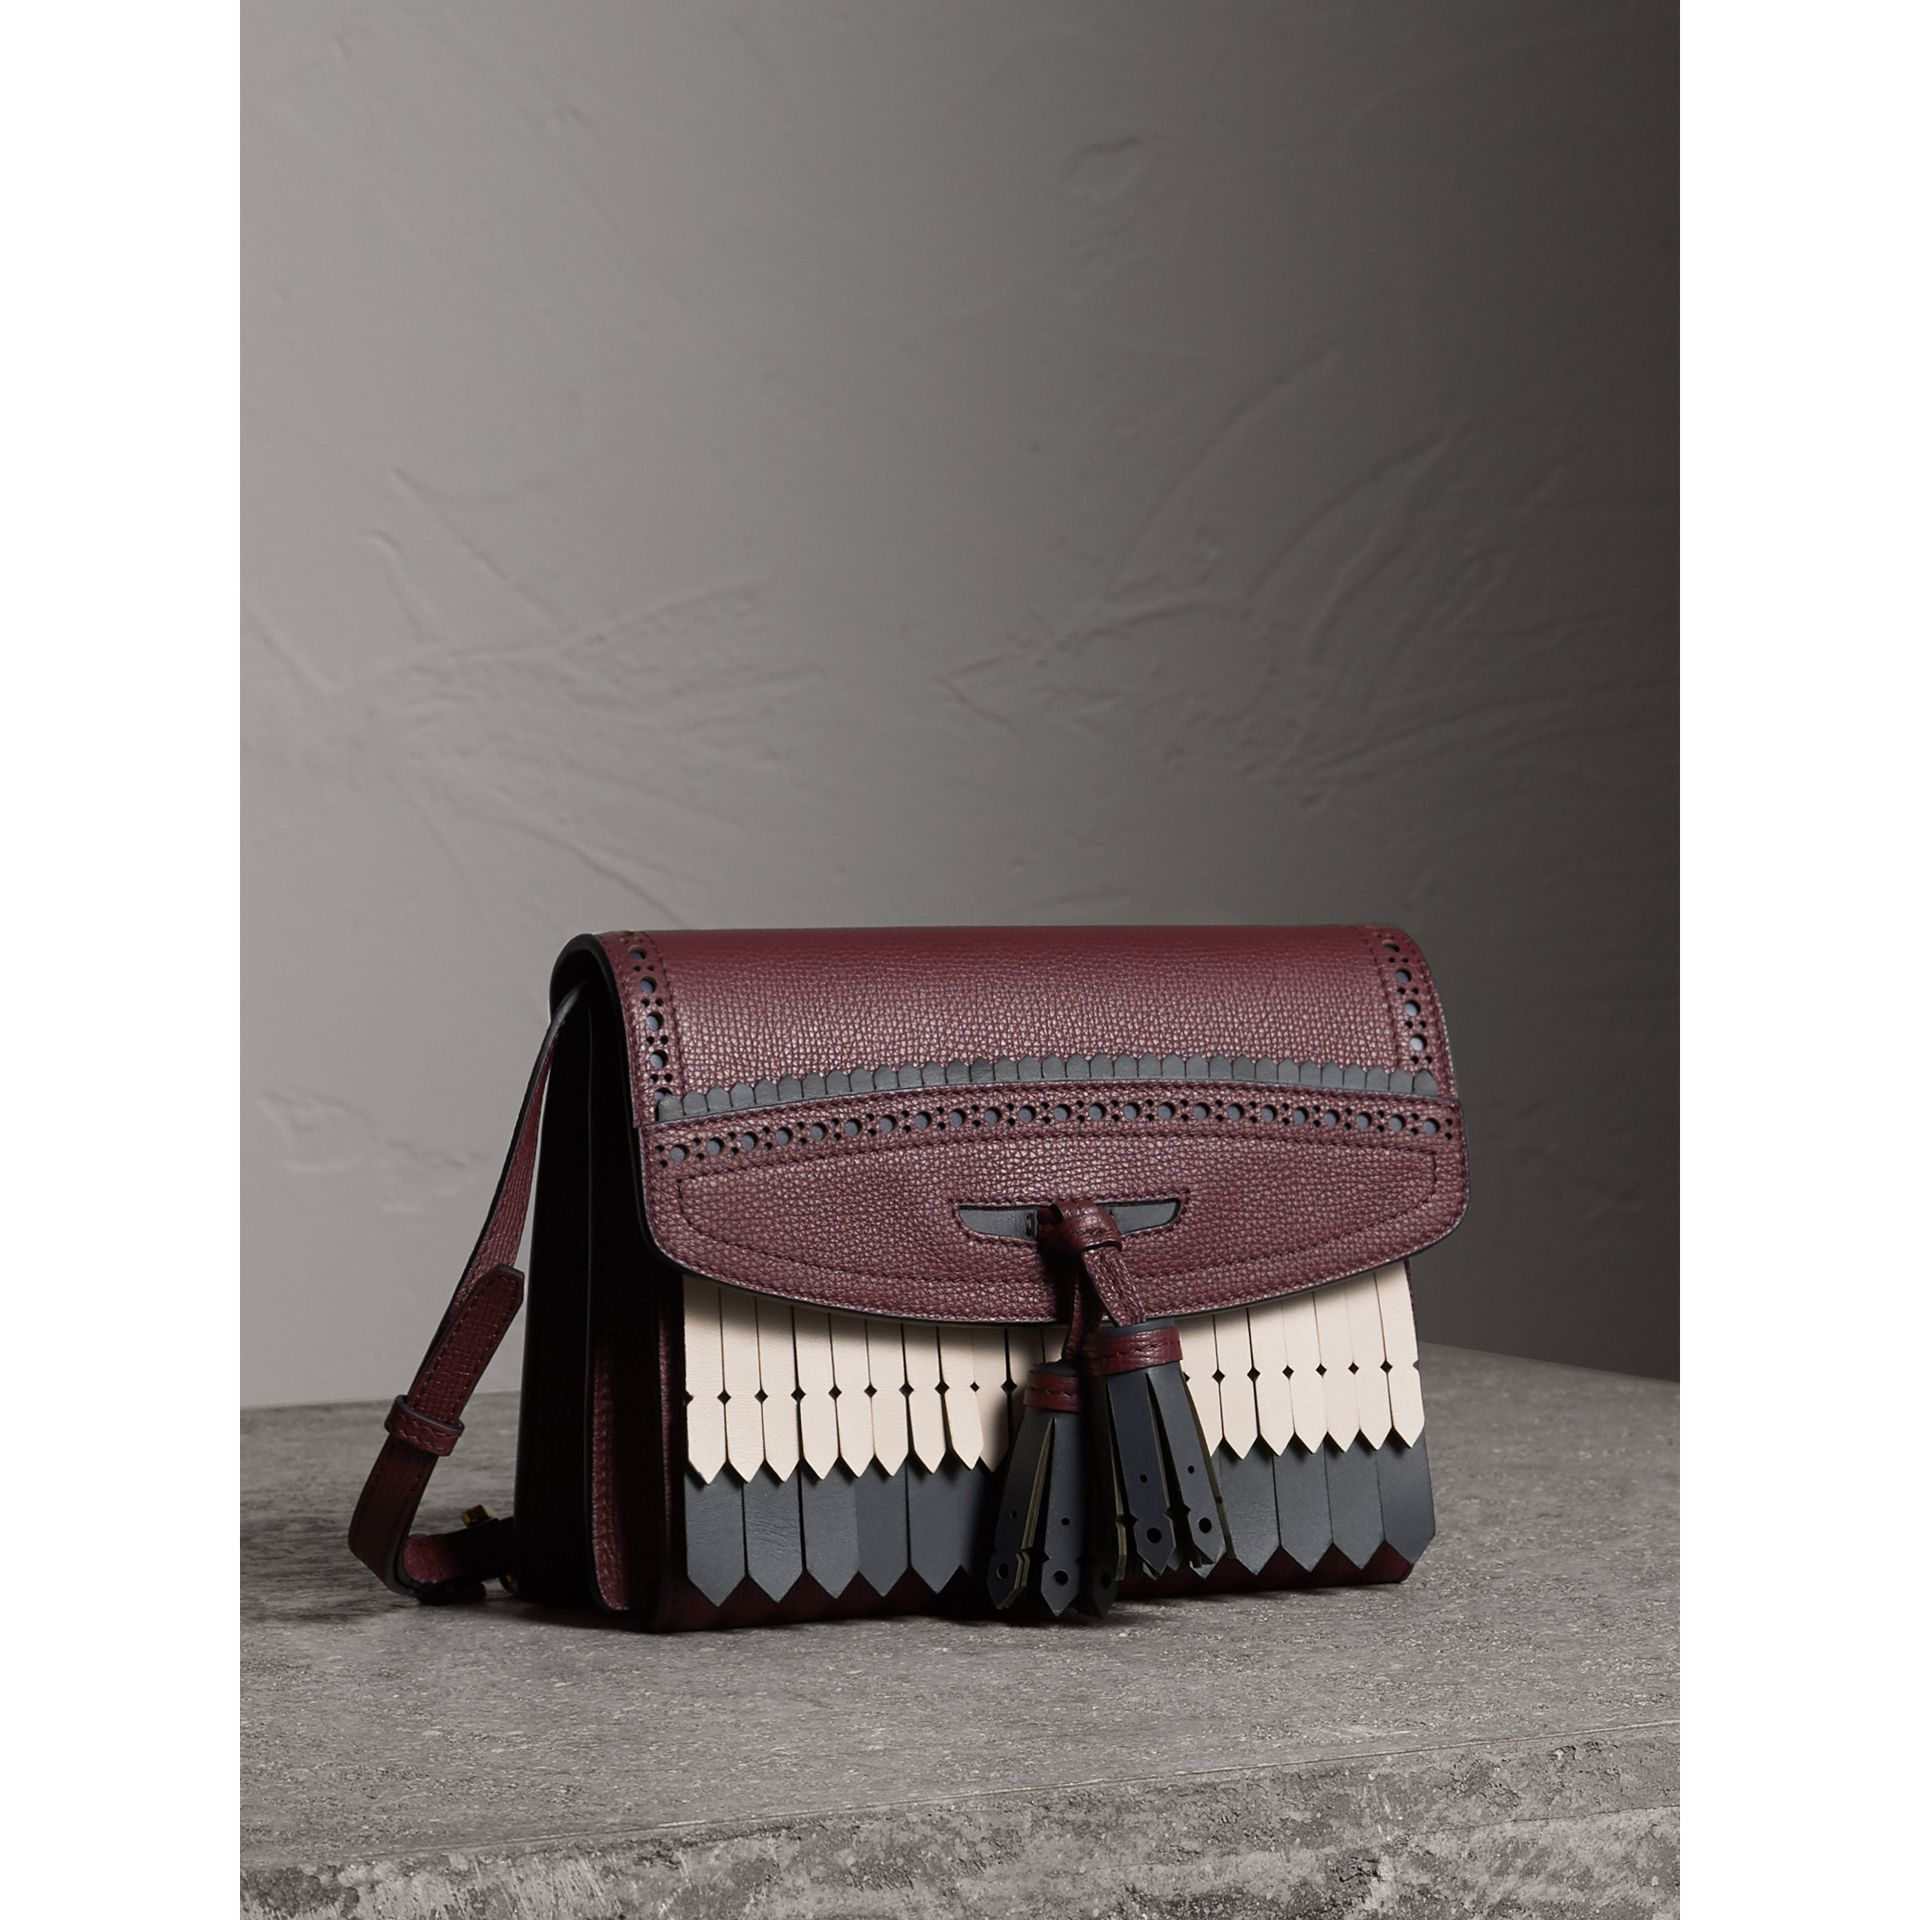 Brogue and Fringe Detail Leather Crossbody Bag in Mahogany Red - Women | Burberry Hong Kong - gallery image 5